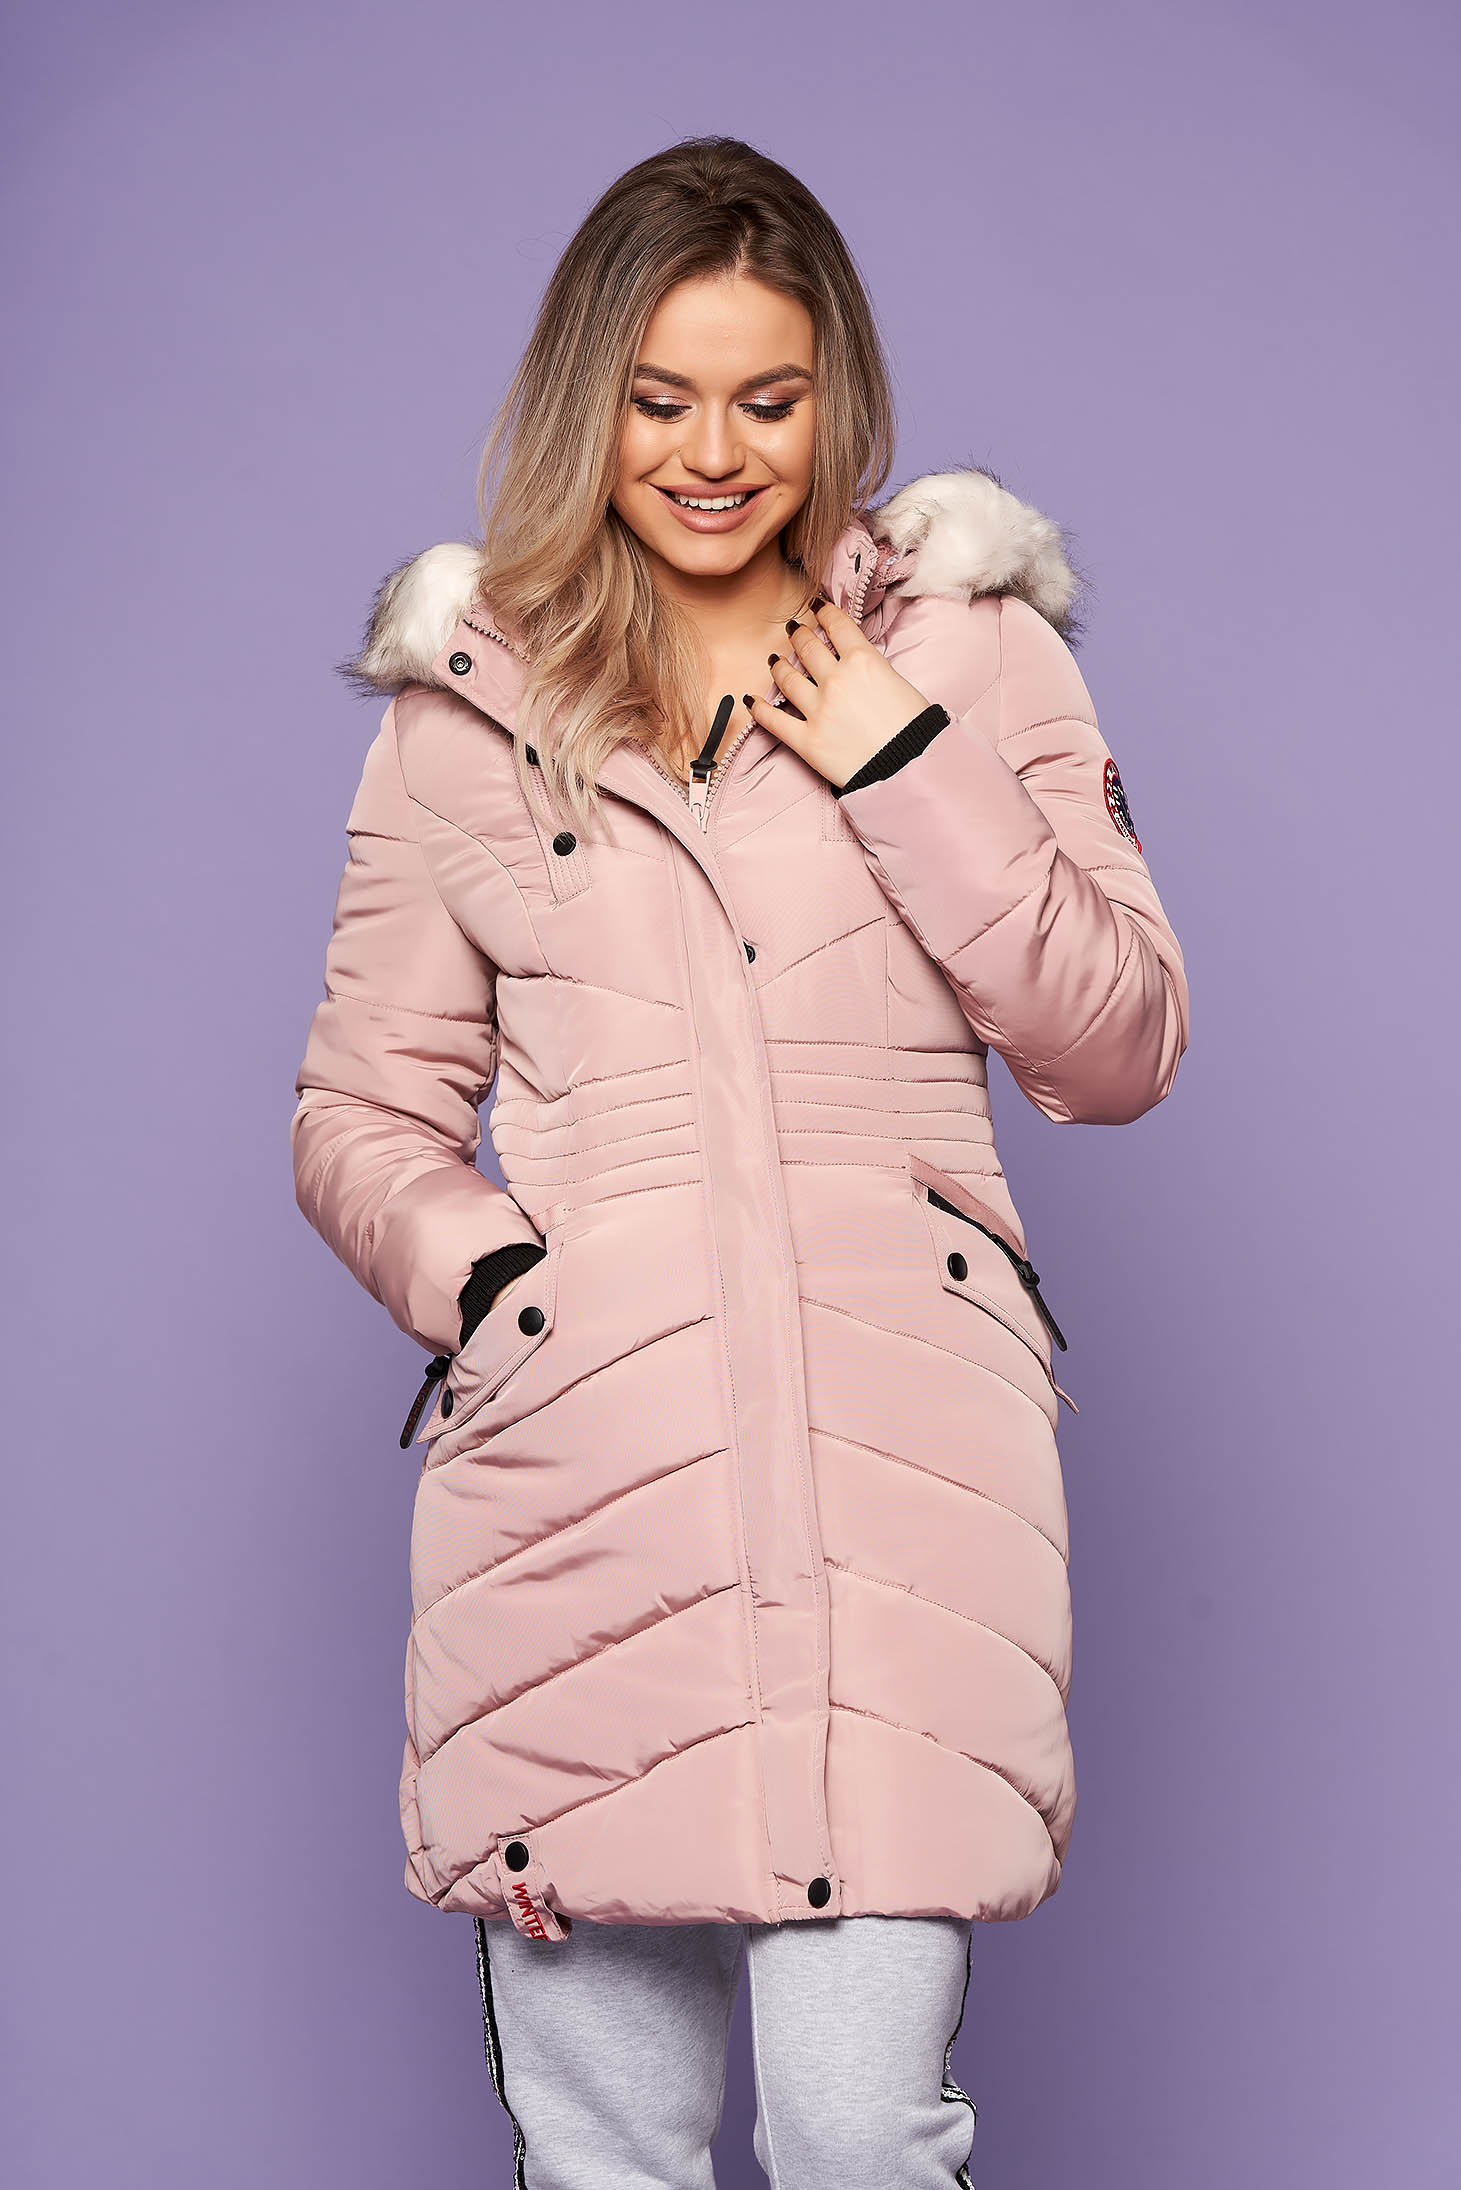 Lightpink jacket casual from slicker with pockets long sleeve with furry hood